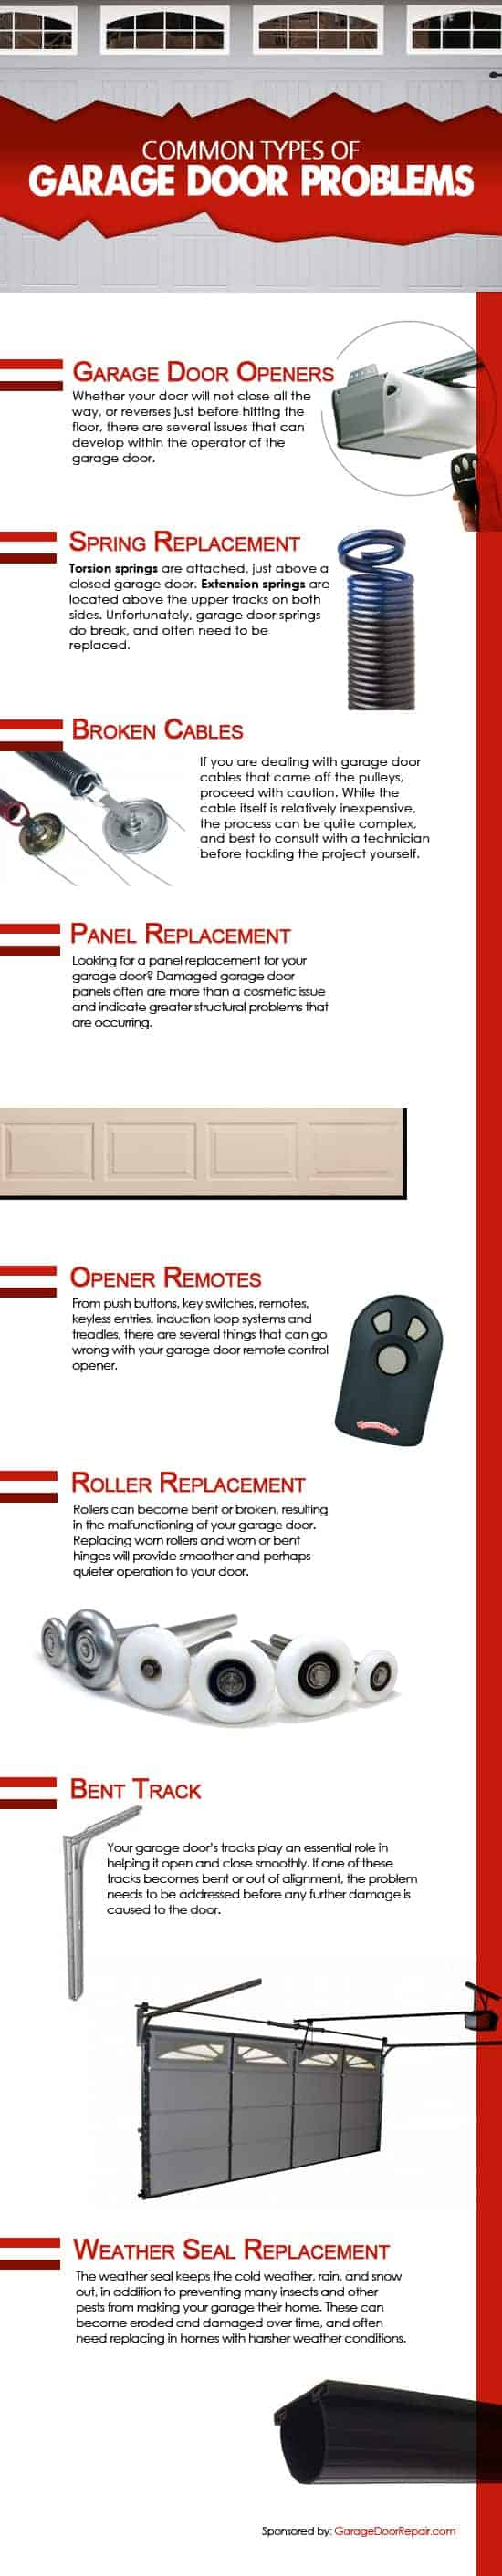 Common Types Of Garage Door Problems Daily Infographic